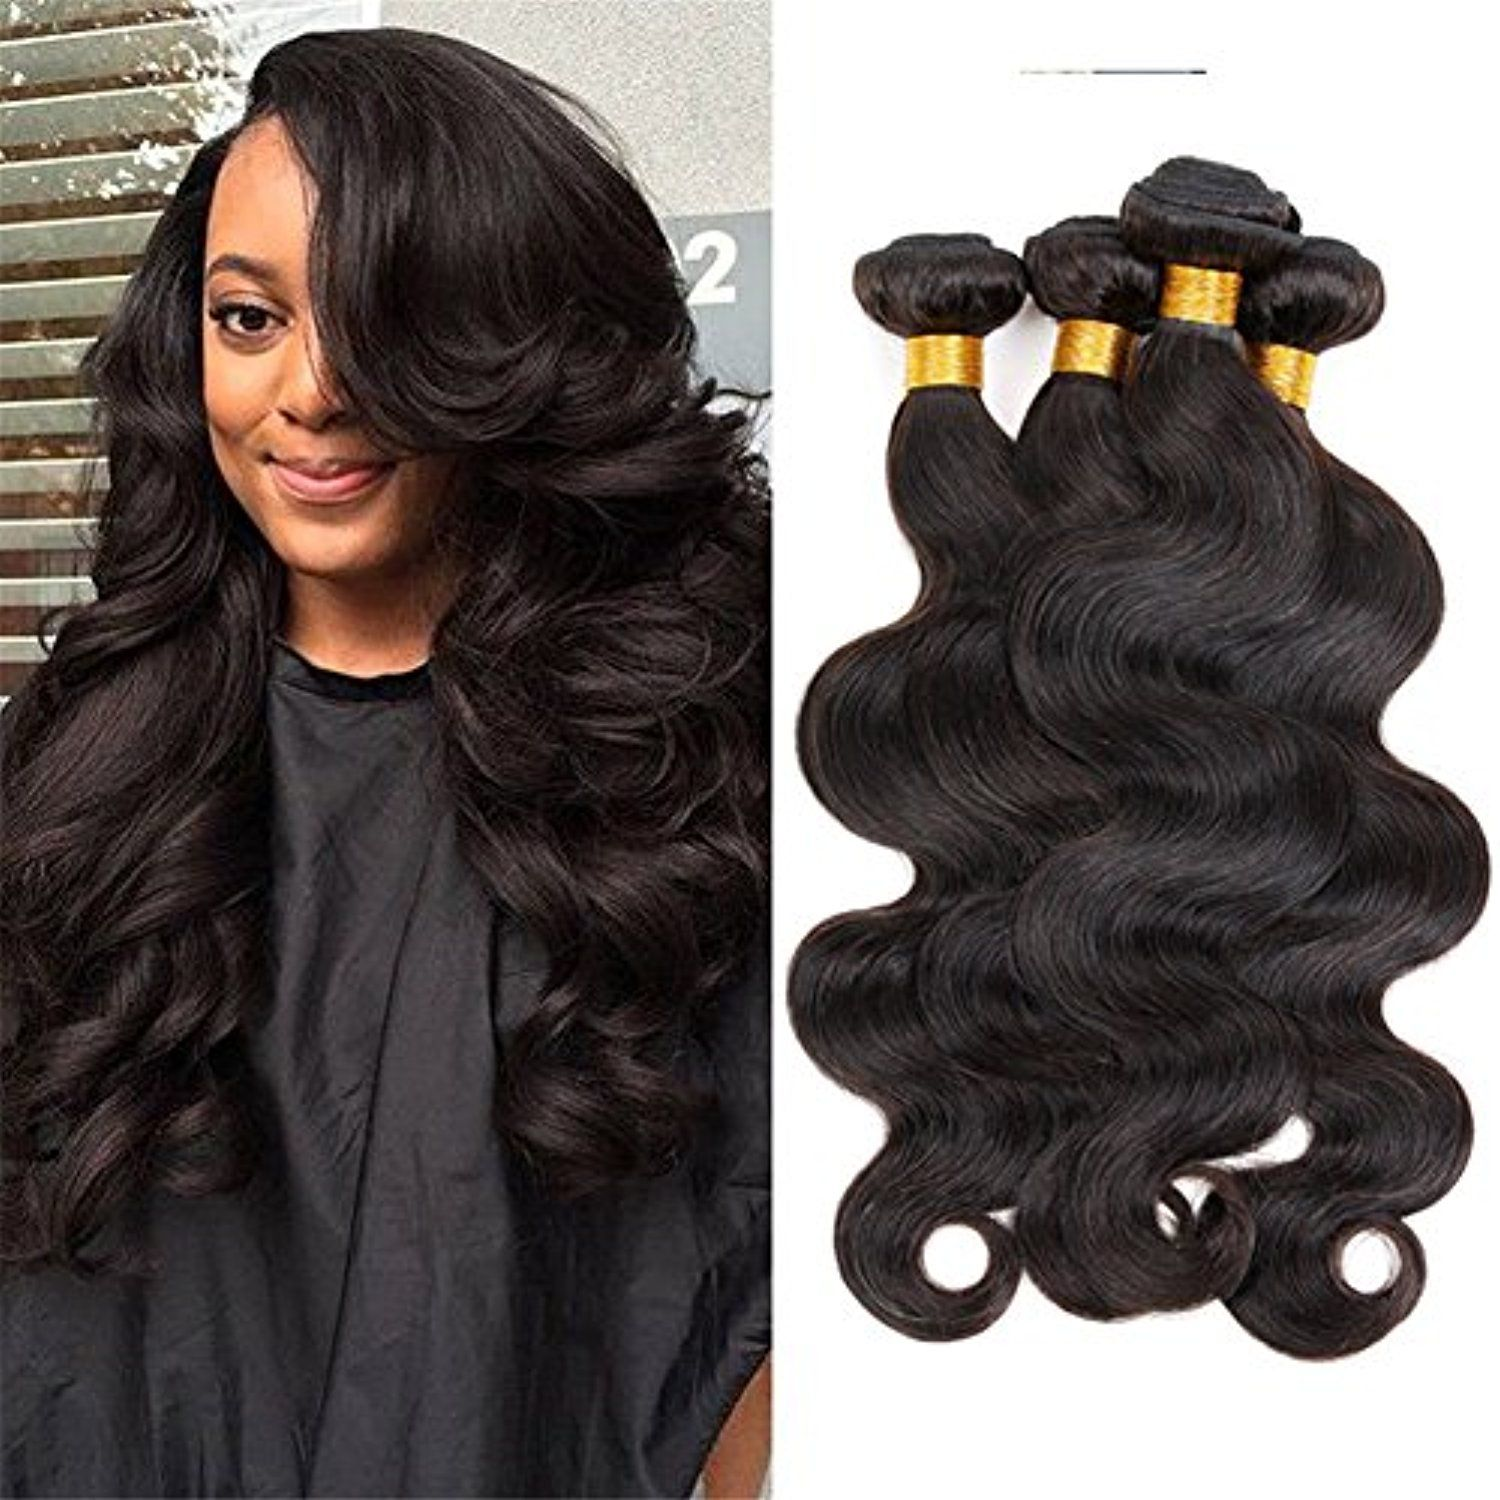 Peruvian Virgin Hair Body Wave Remy Human Hair 3 Bundles Weaves 100 Unprocessed Hair Extens Unprocessed Hair Peruvian Hair Body Wave 100 Human Hair Extensions